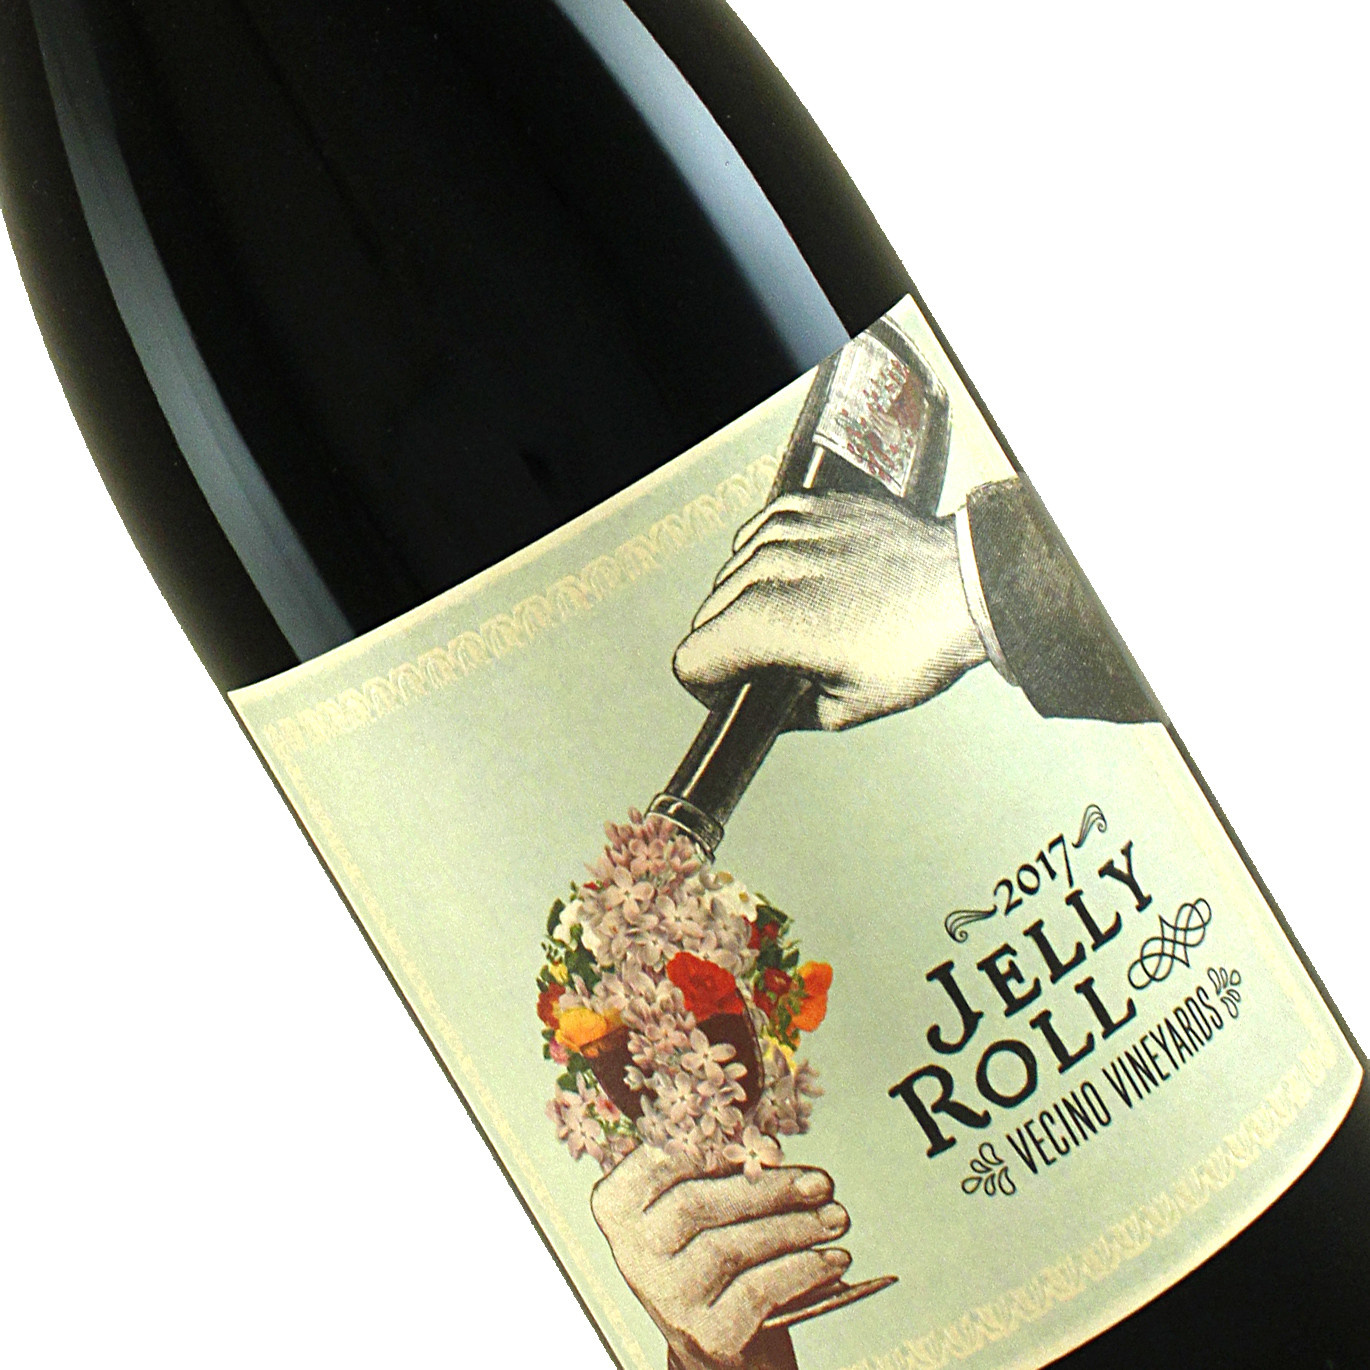 Jelly Roll 2017 Syrah Vecino Vinyards, Potter Valley, Mendocino County